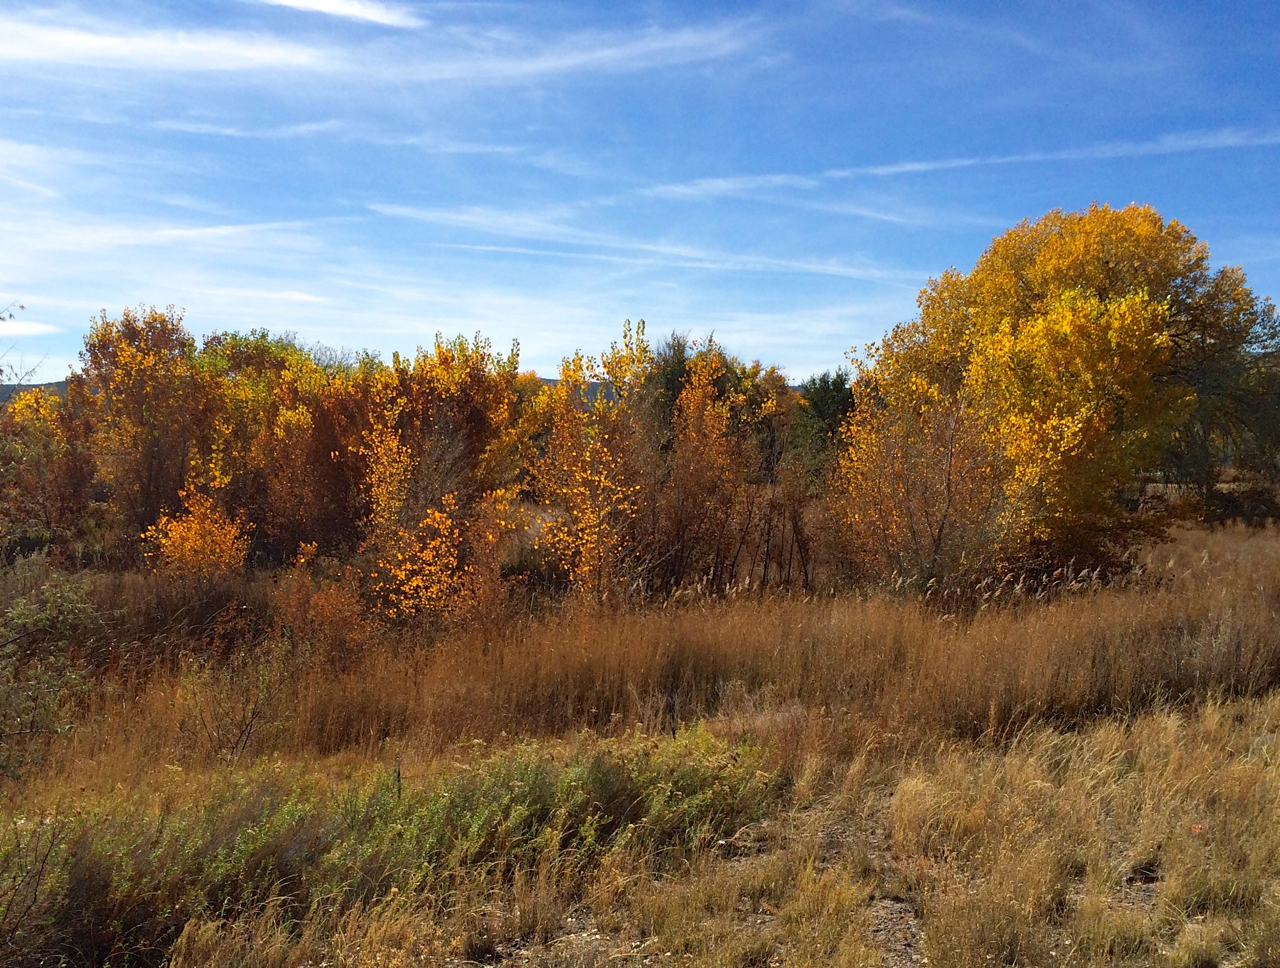 Cottonwoods showing autumn's final colors along the Rio Chama.